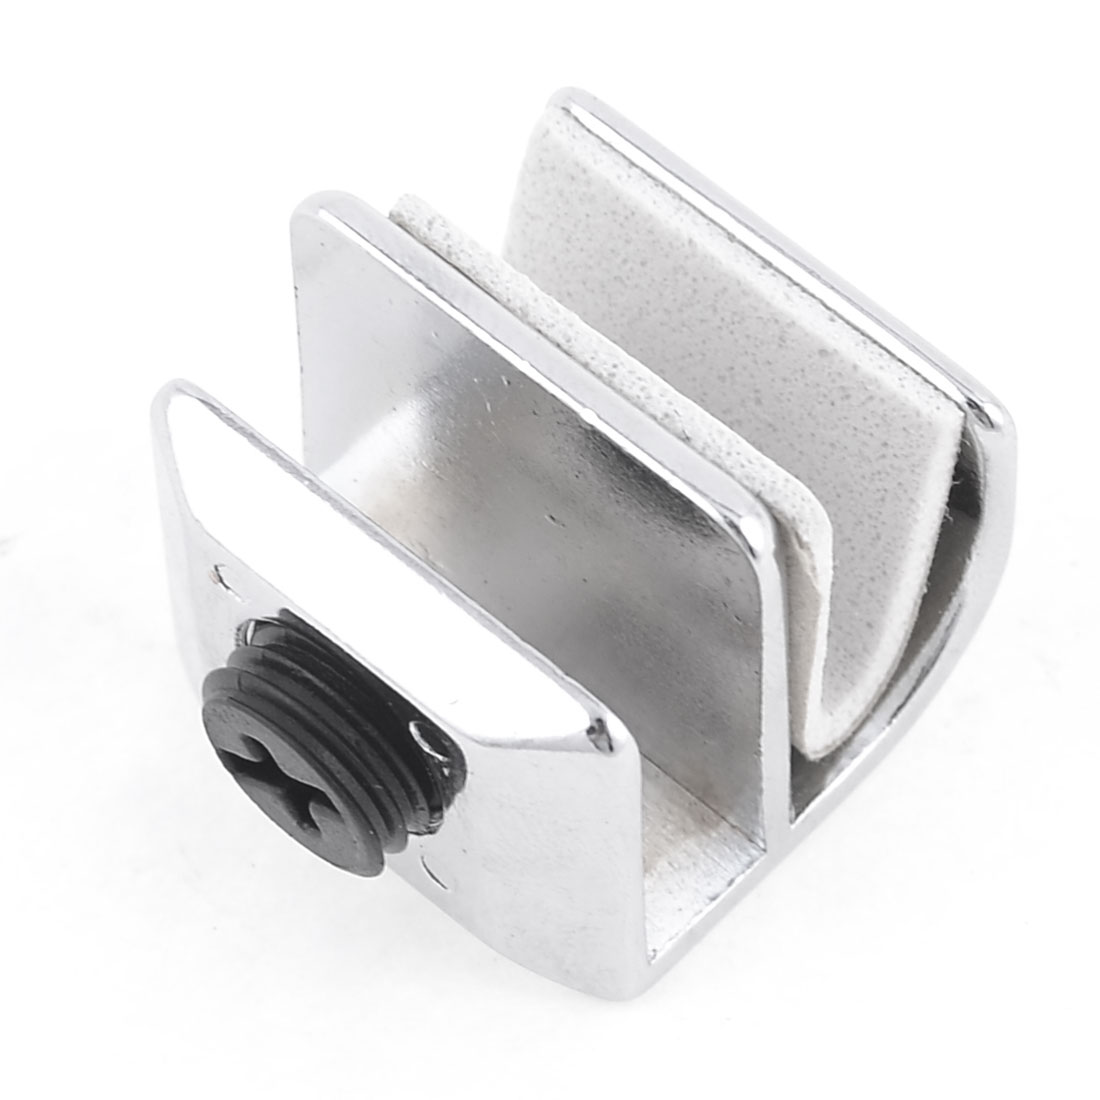 "Bathroom Wall Mounted 5/16"" 8mm Thick Glass Clip Adjusting Clamp"